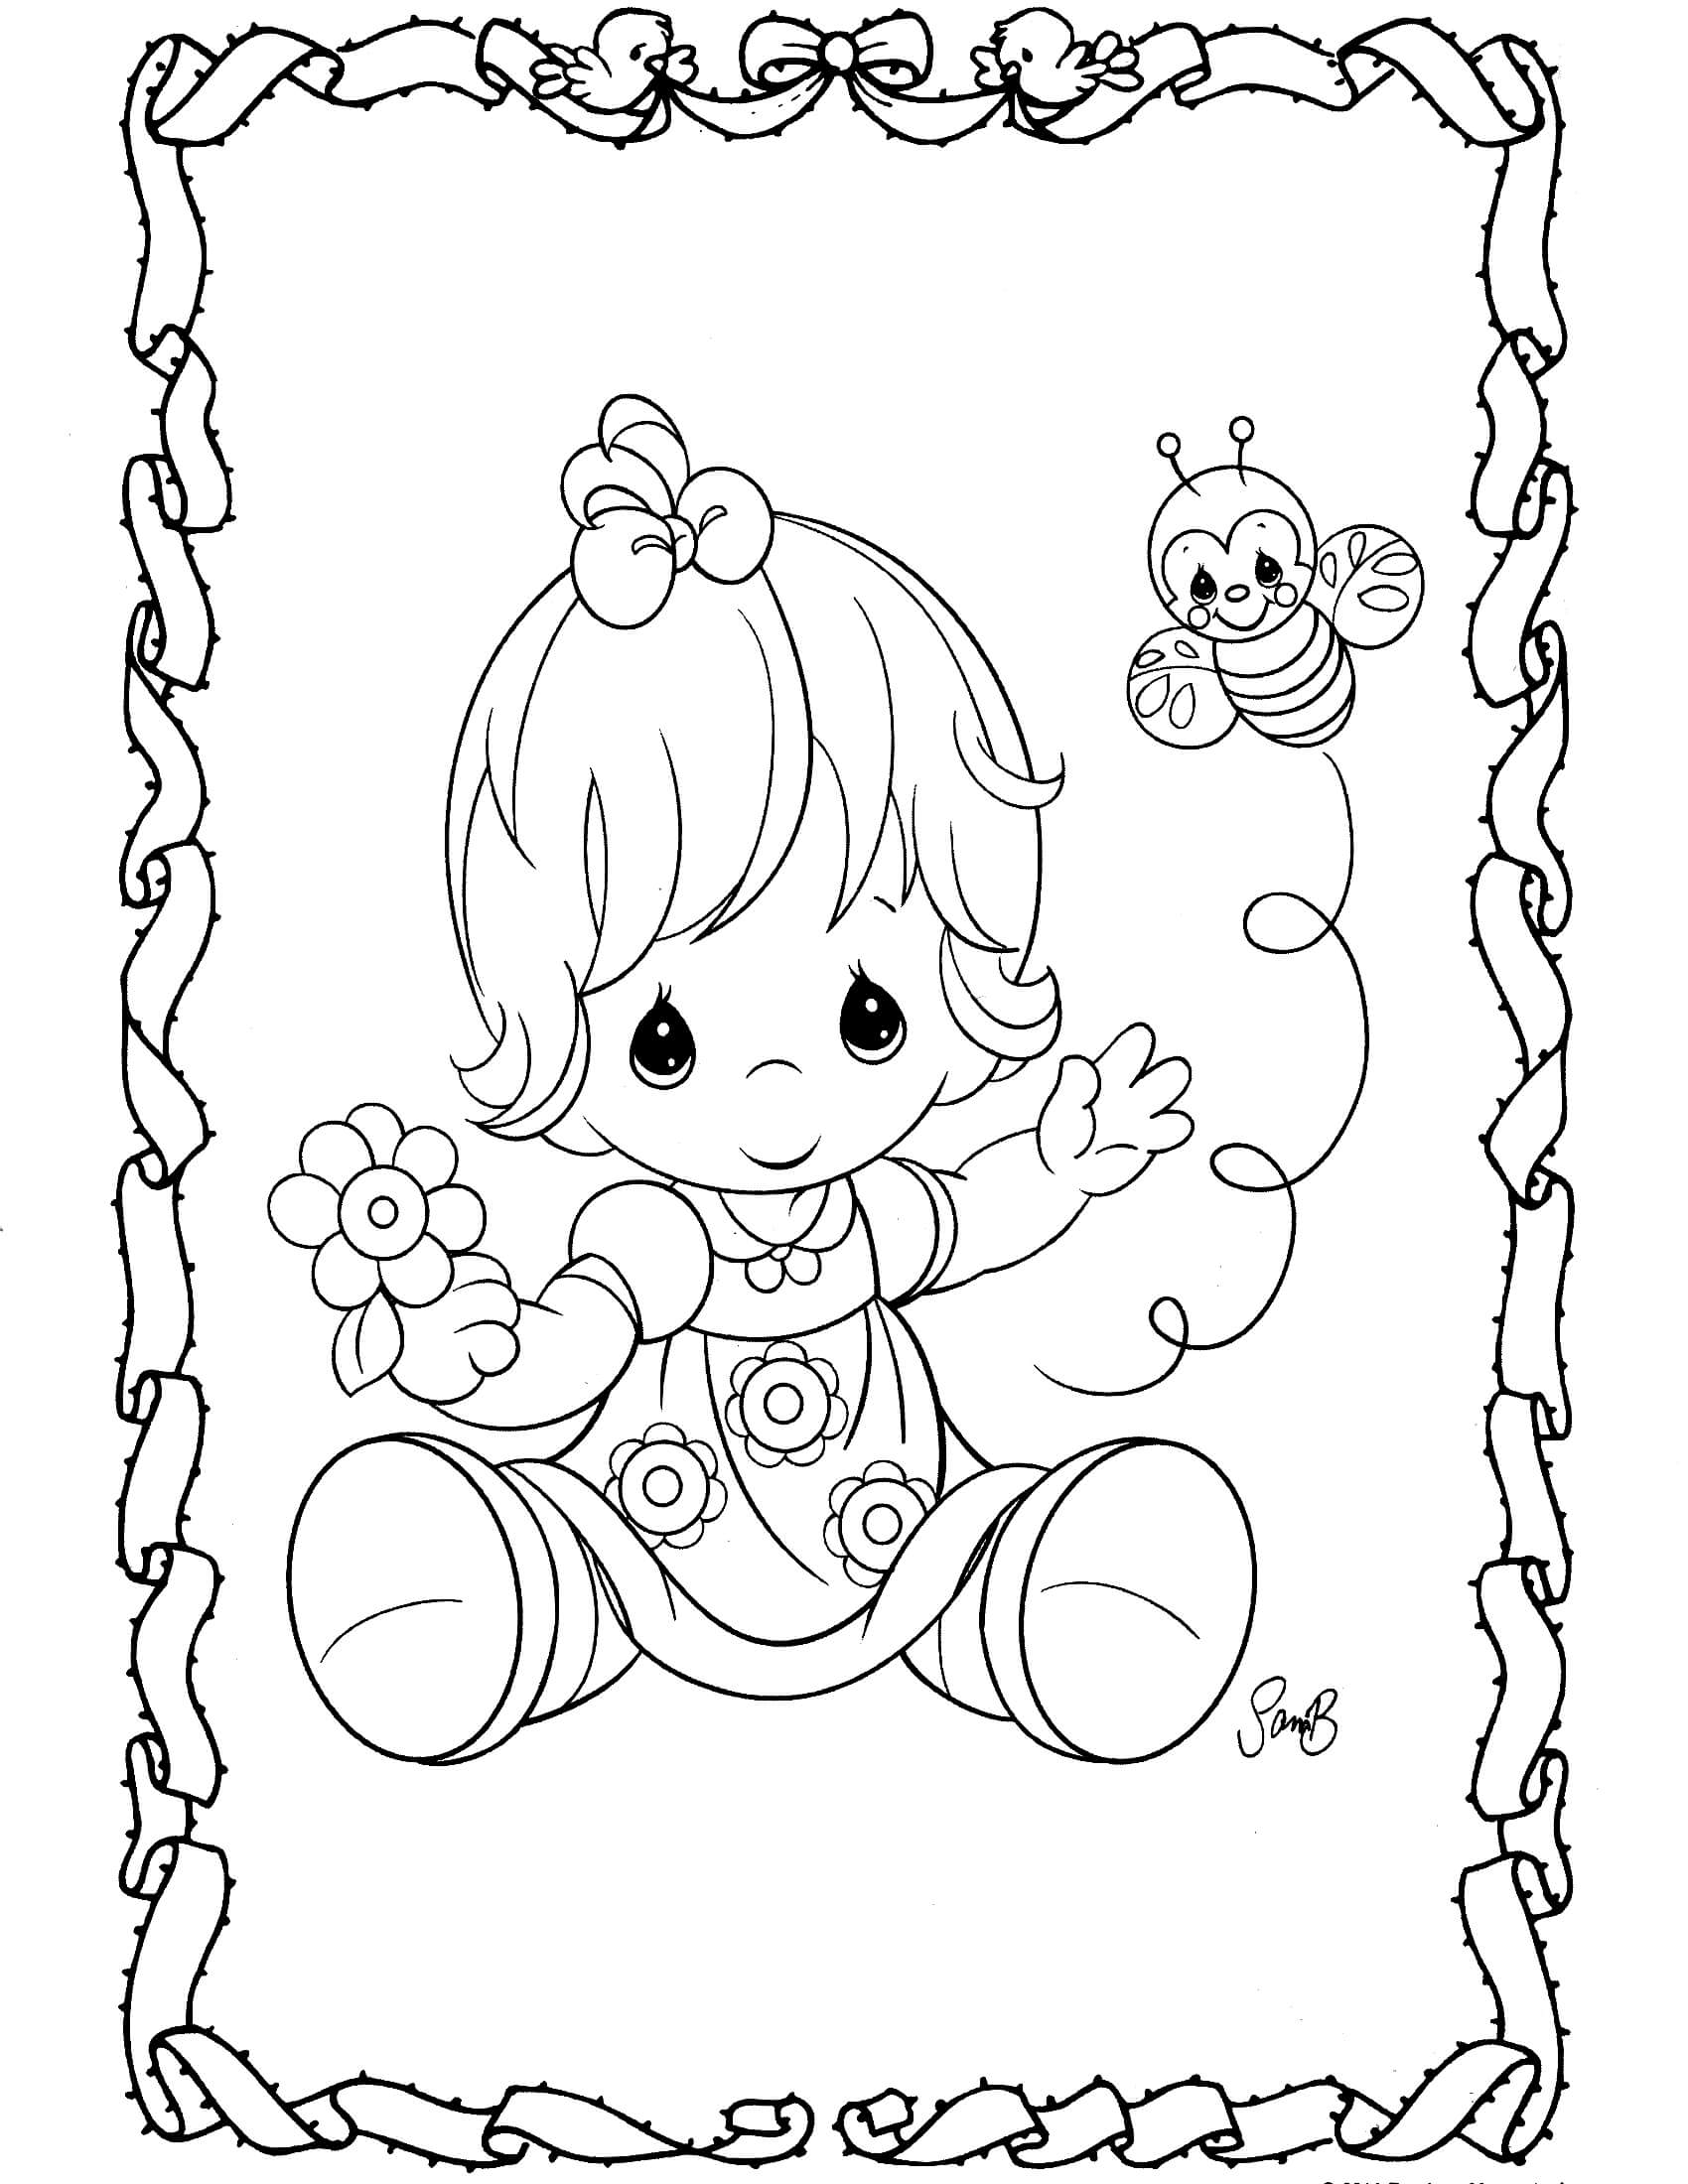 precious moments coloring pages printable precious moments wallpapers 40 images printable precious coloring pages moments